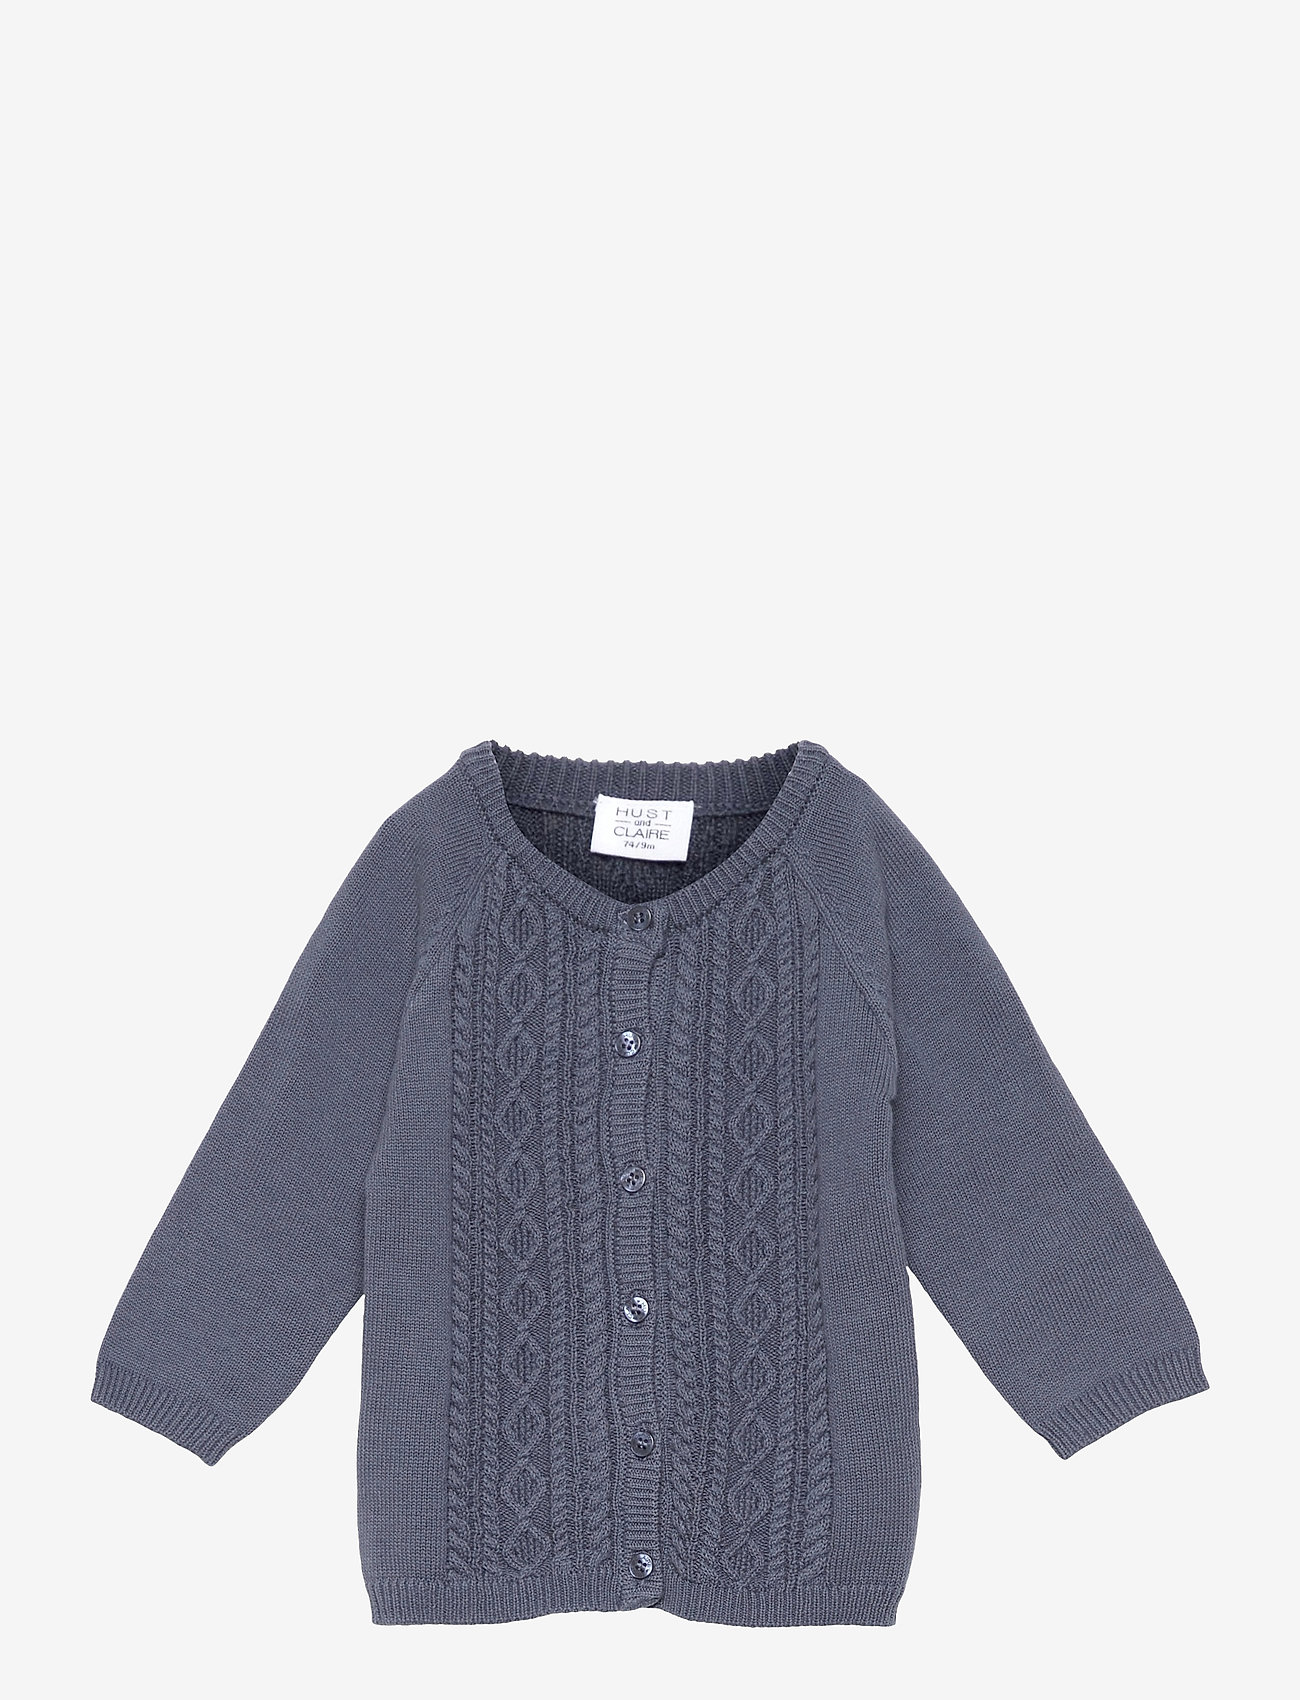 Hust & Claire - Cammie - Cardigan - gilets - blue storm - 0